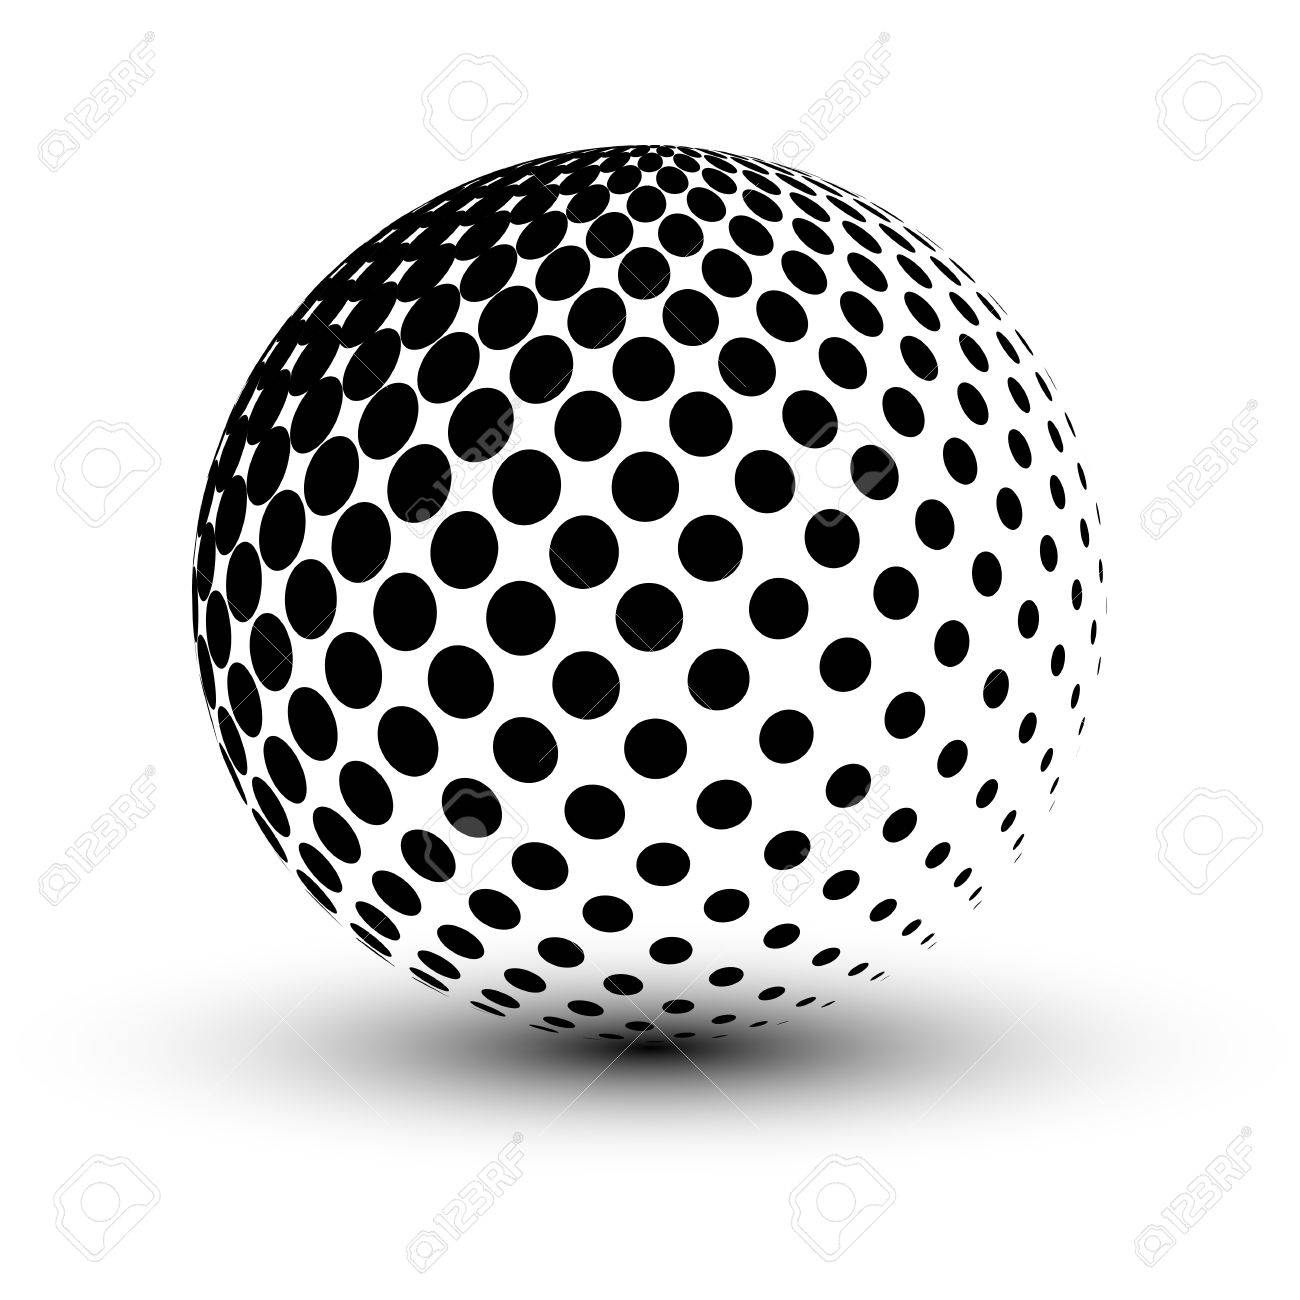 abstract halftone sphere, vector design. royalty free cliparts, vectors,  and stock illustration. image 44225993.  123rf